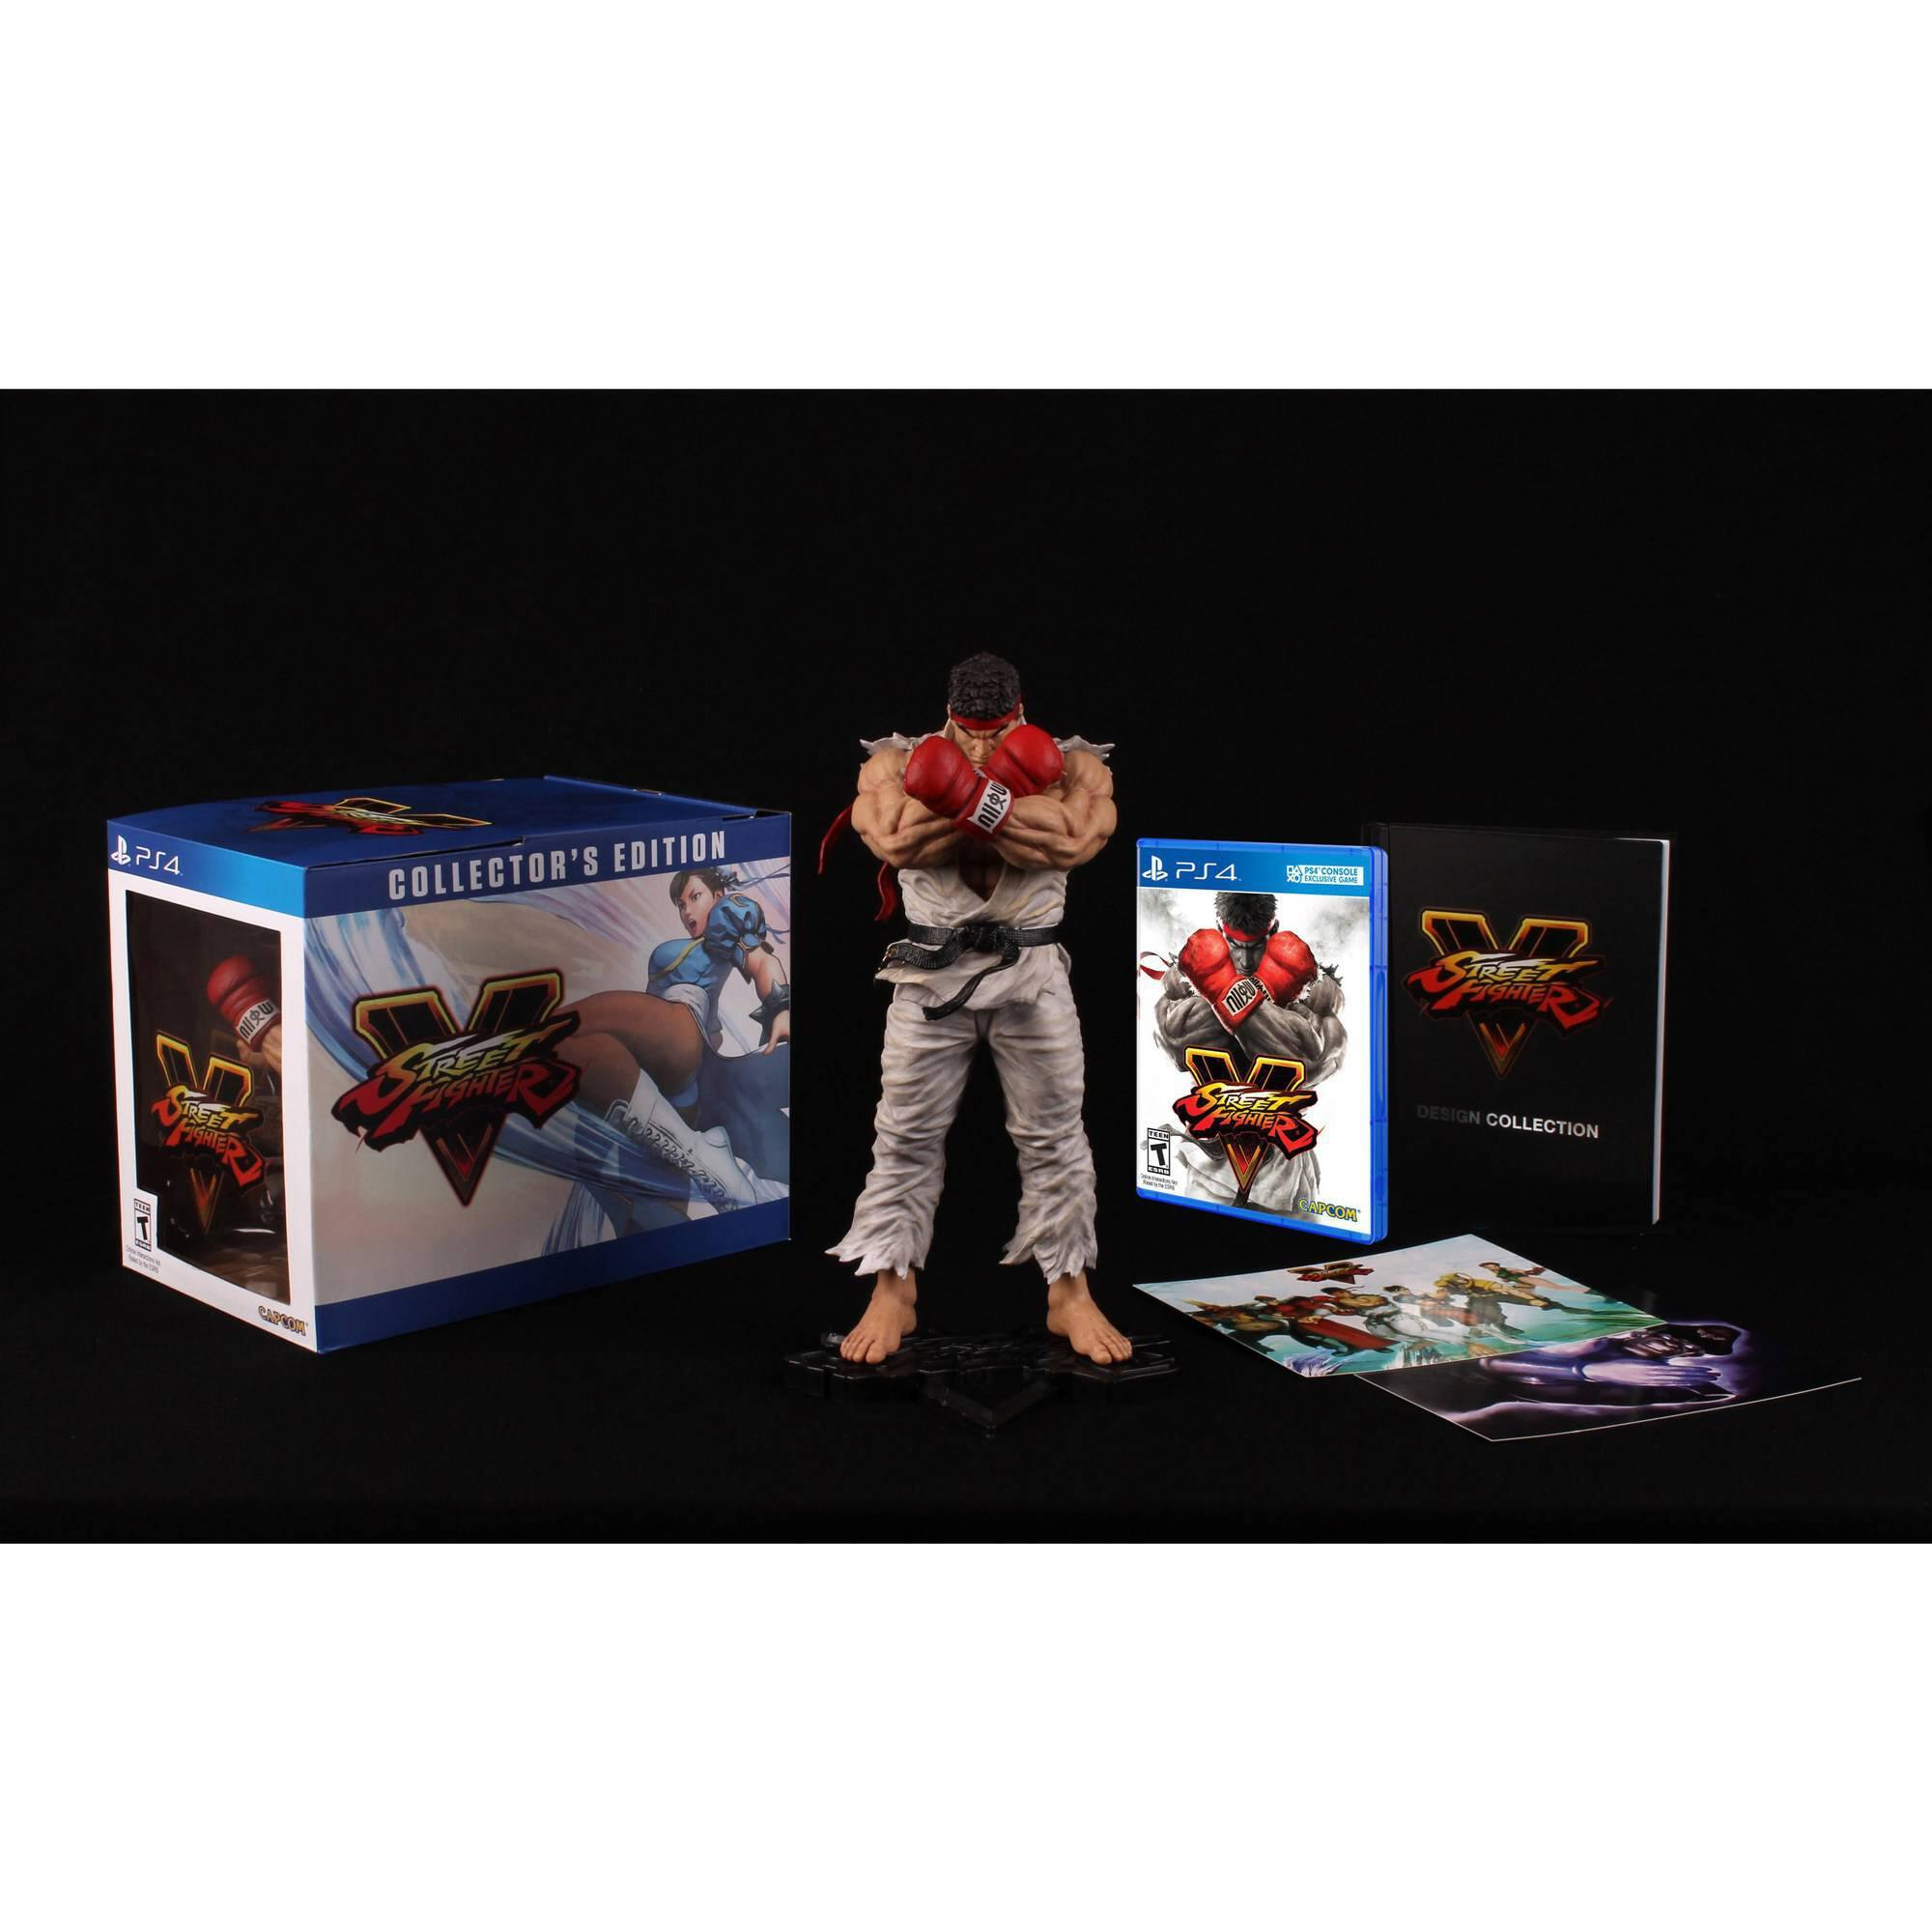 Street Fighter V: Collector's Edition (PS4)  $51.60 + Free Shipping